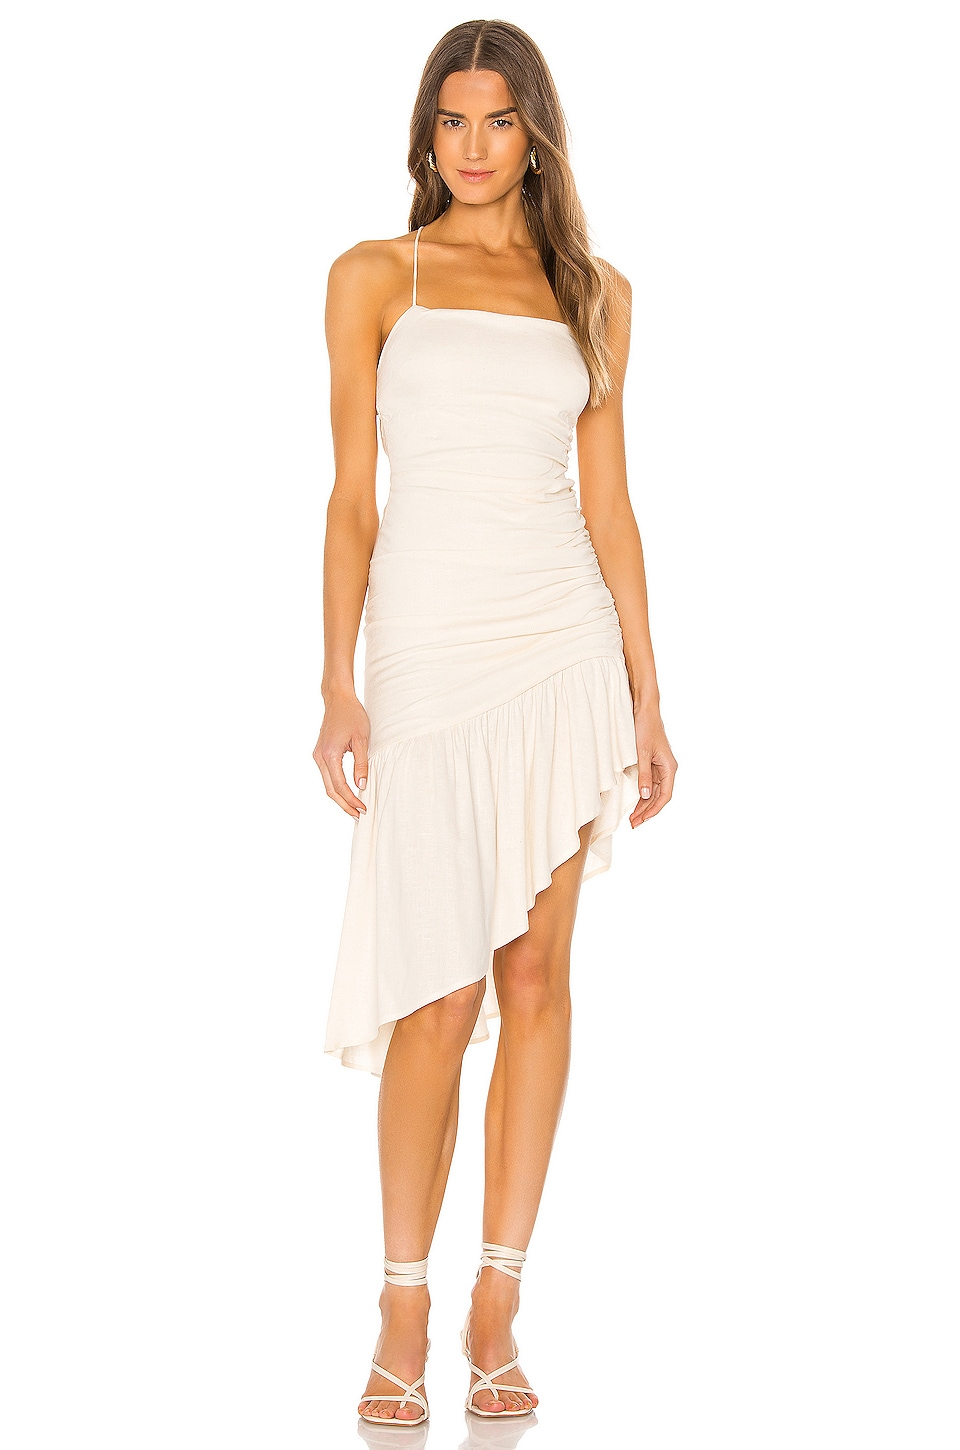 Lovers + Friends Naomi Dress in Light Beige